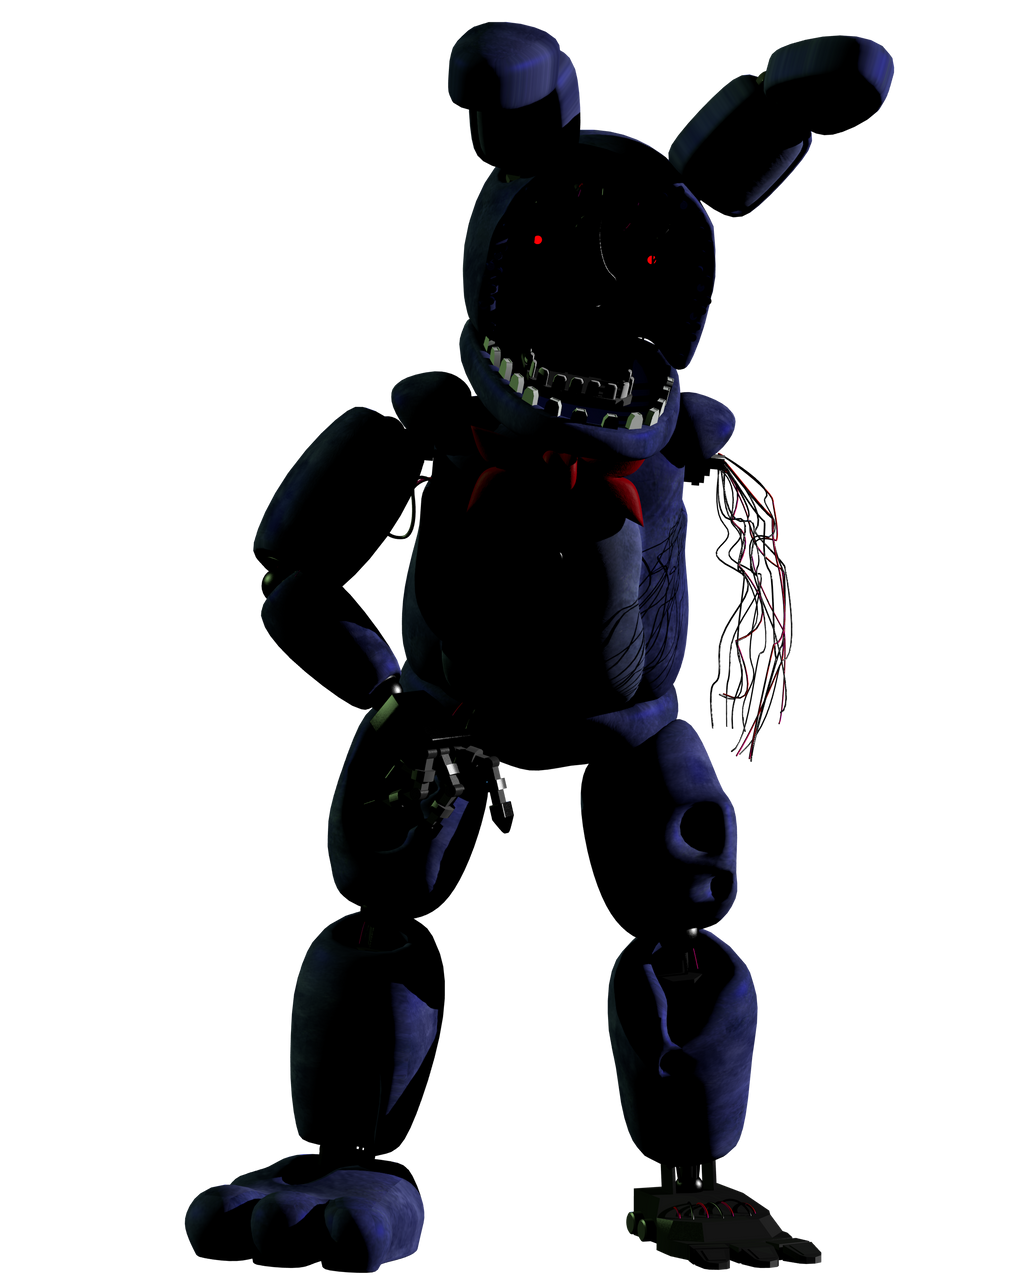 Stylized Withered Bonnie By AustinTheBear On DeviantArt